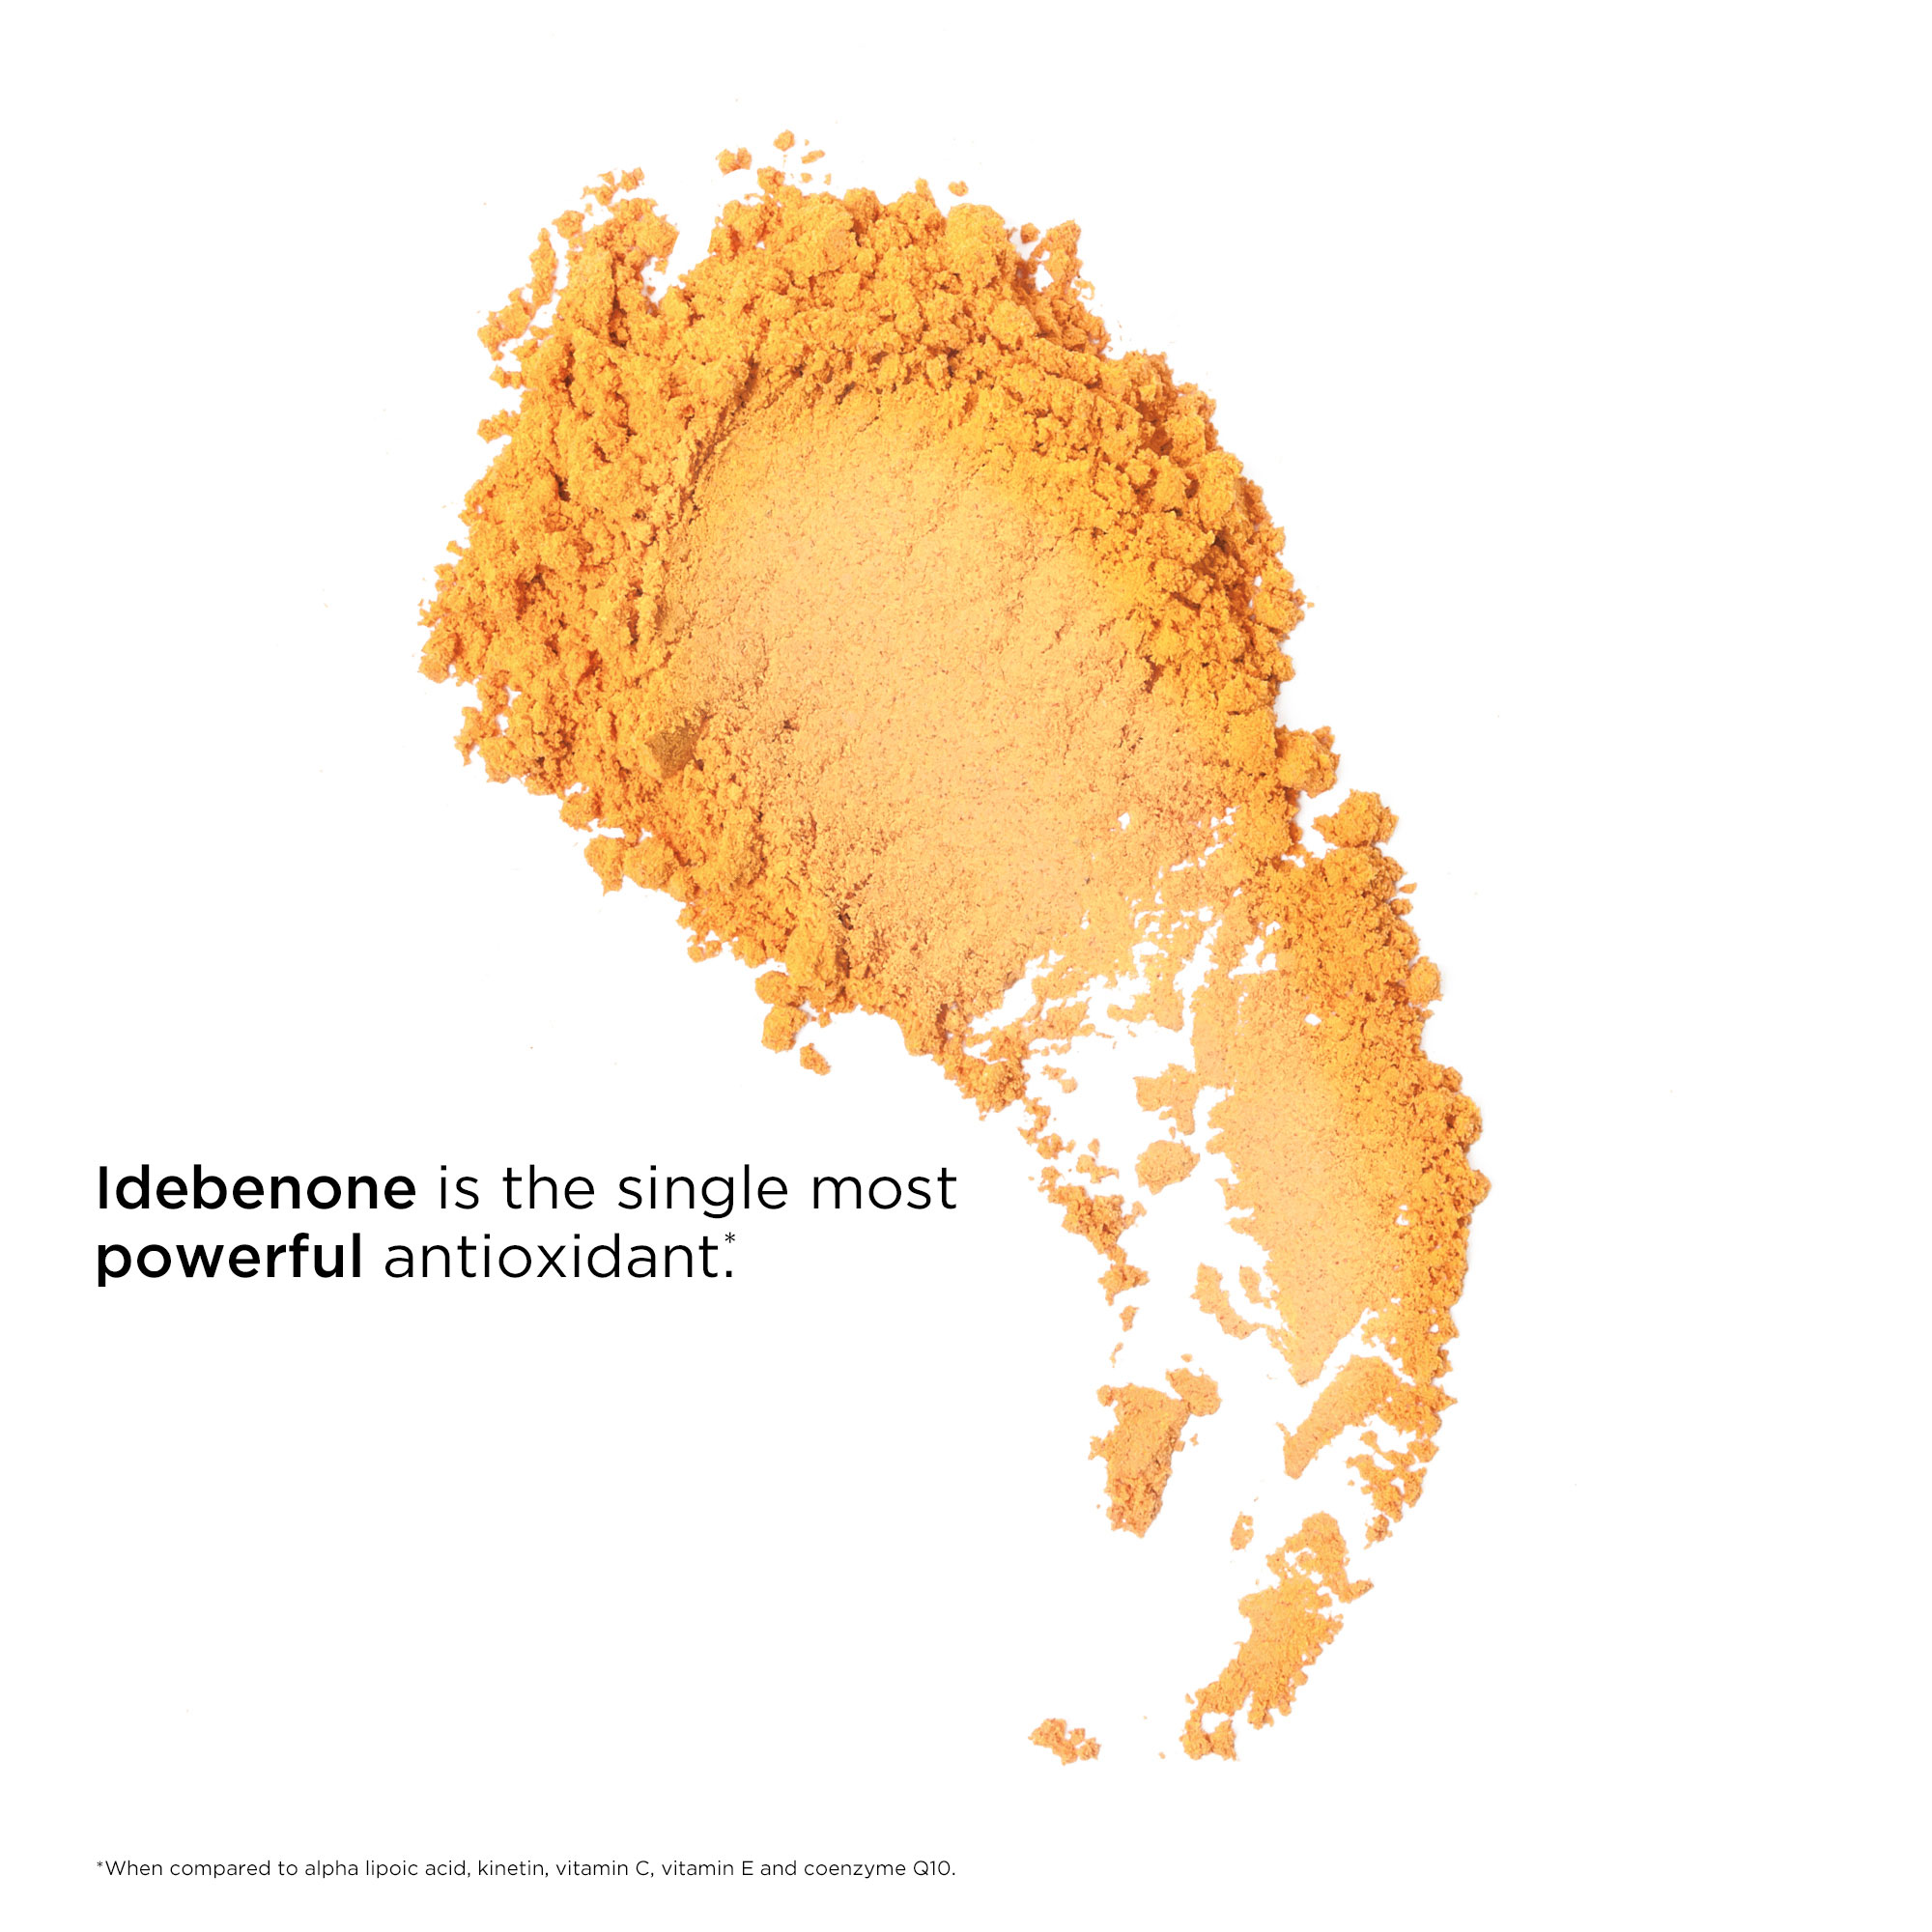 Idebenone is the single most powerful antioxidant when compared to alpha lipoic acid, kinetin, Vitamin c, vitamin e, and coenzyme Q10.